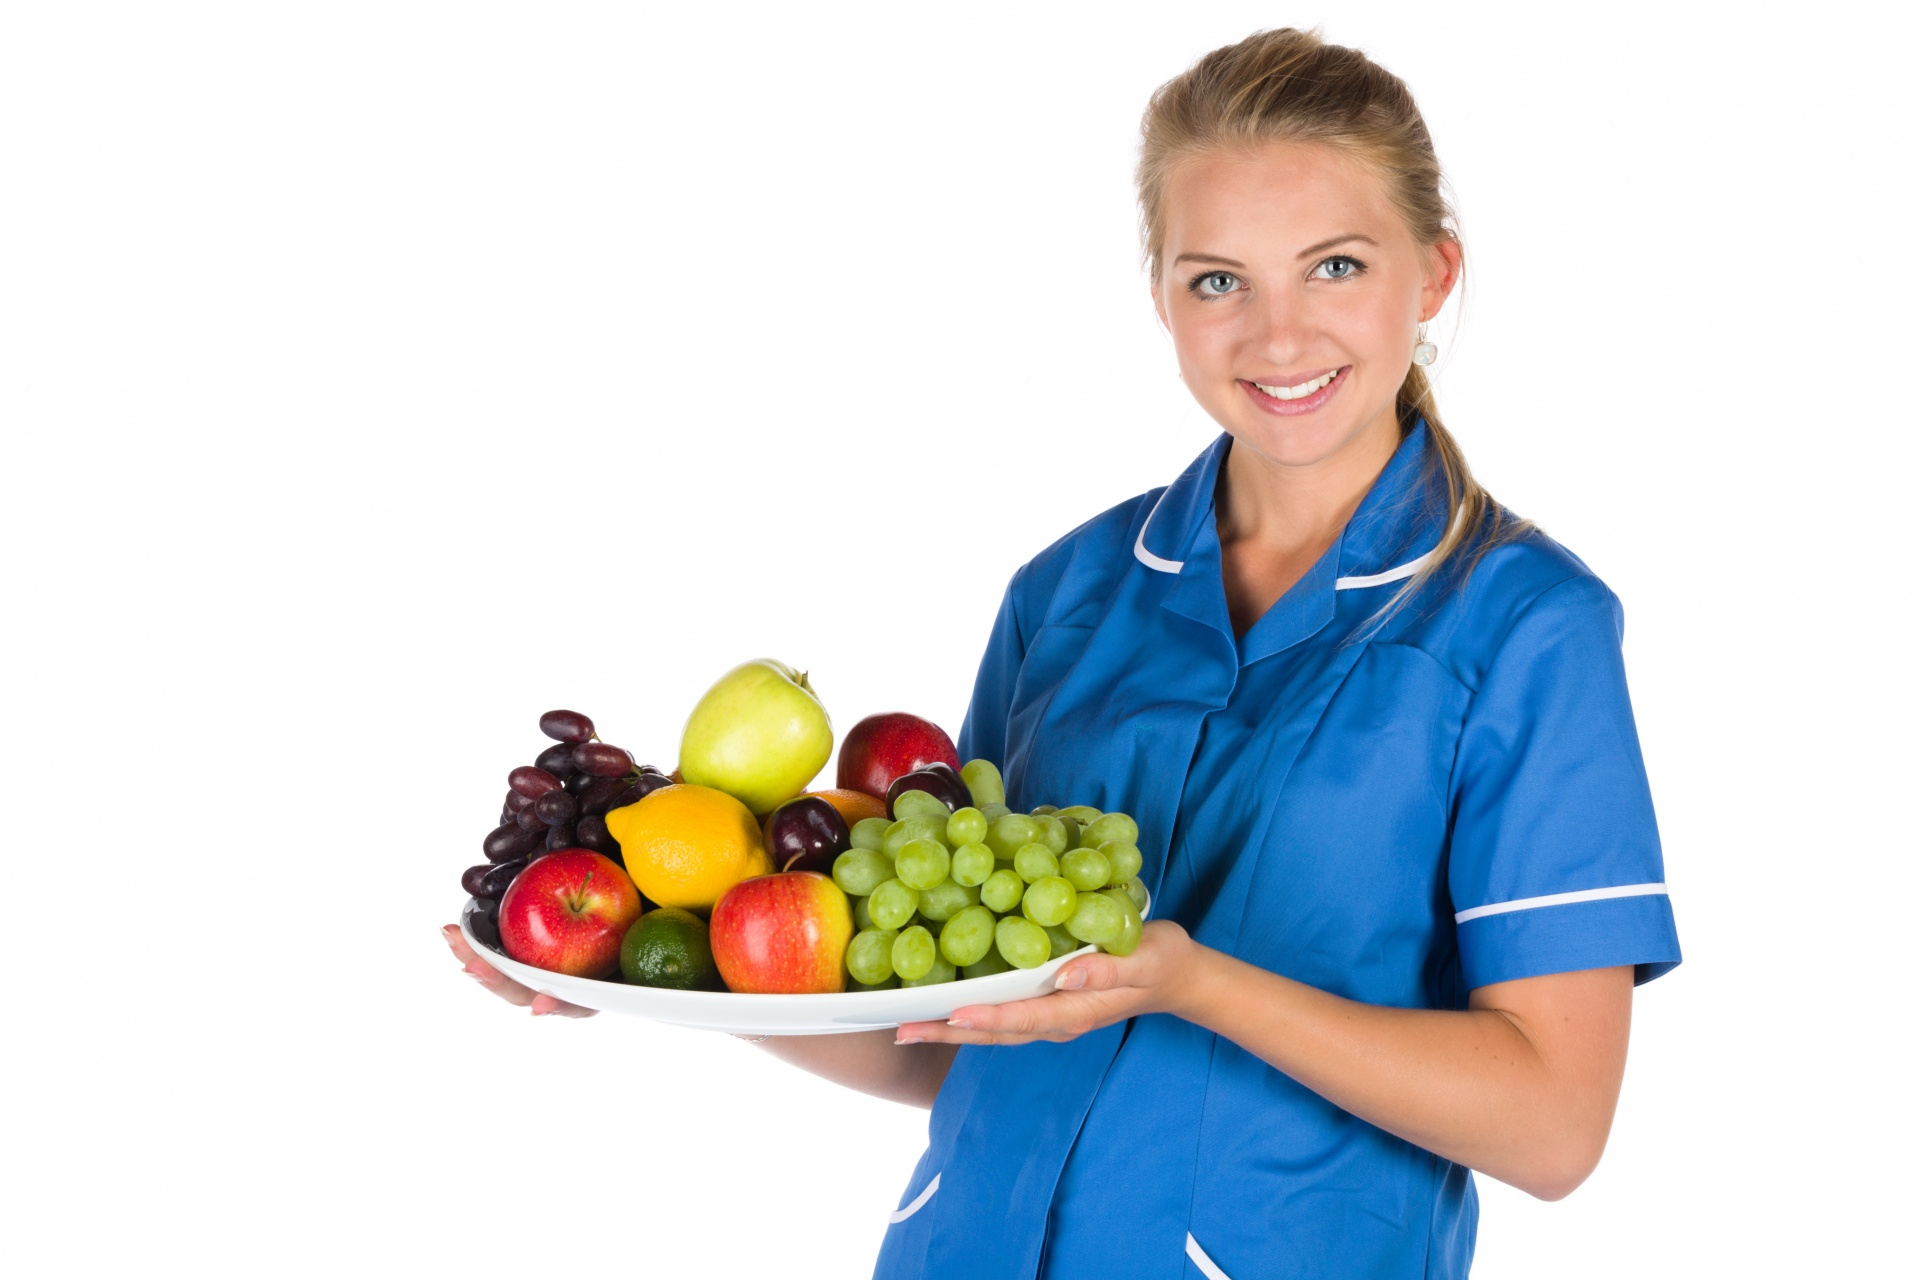 nurse-and-a-bowl-of-fruit-1471422199QQj